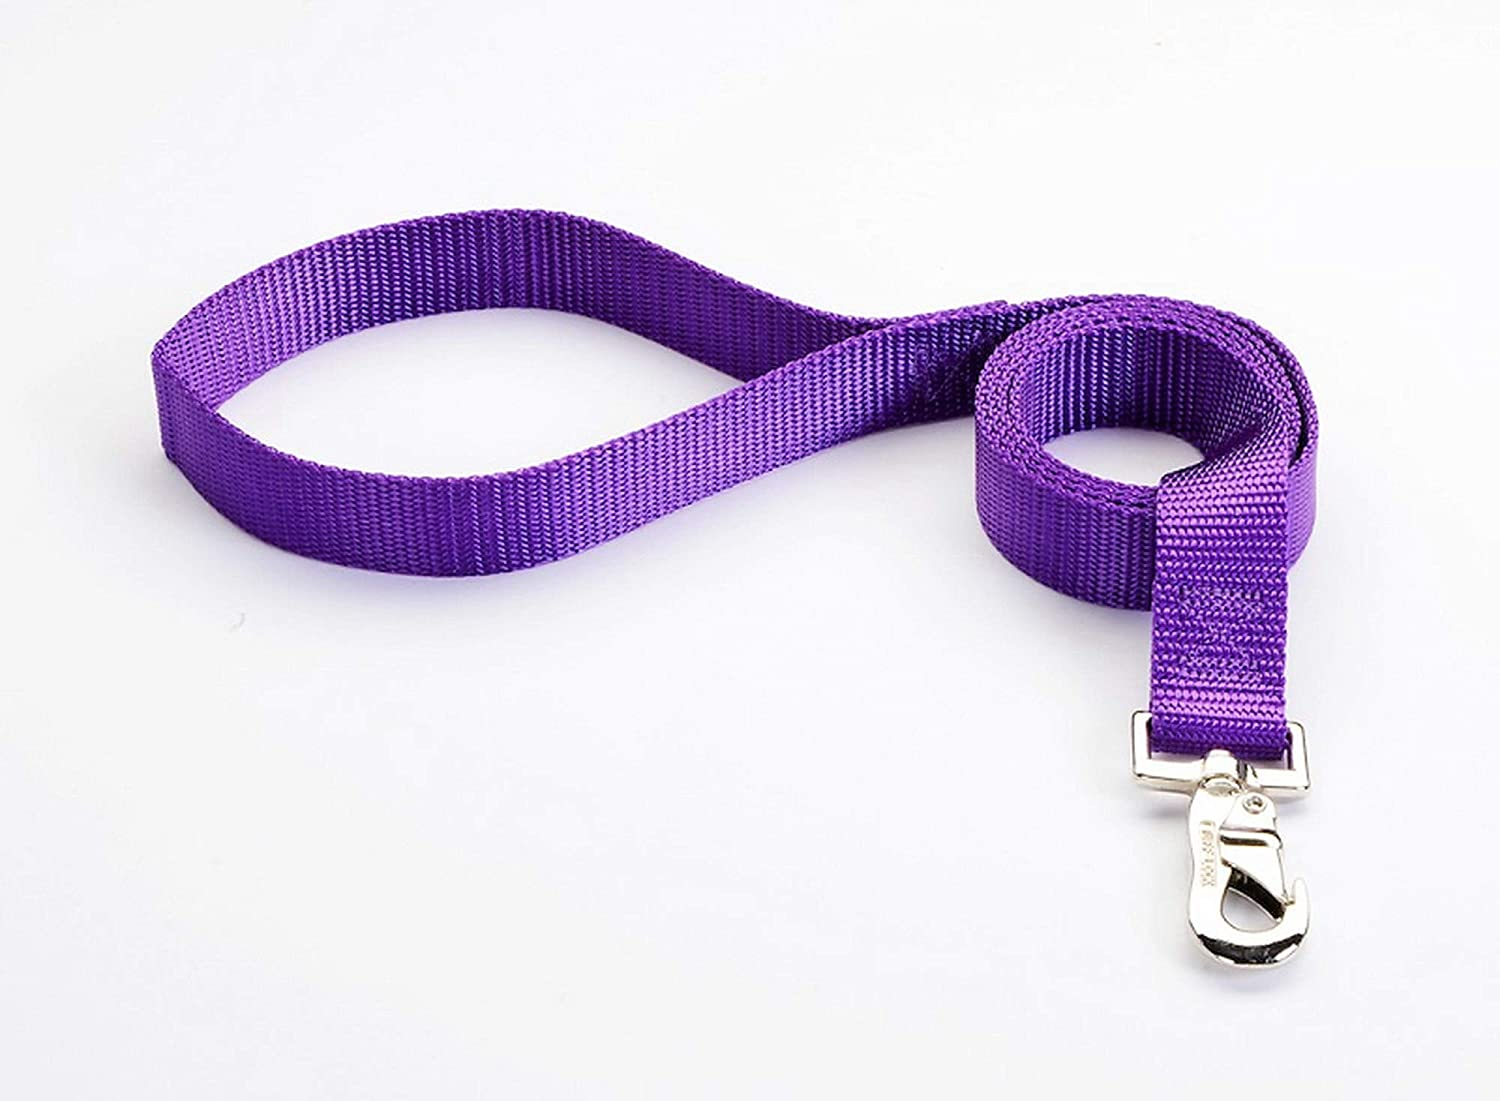 Tuff Lock Durable Nylon Training Leash Full Control Lead for Dog/Puppy, Made in USA, Multiple Sizes - (Leash-Solids)